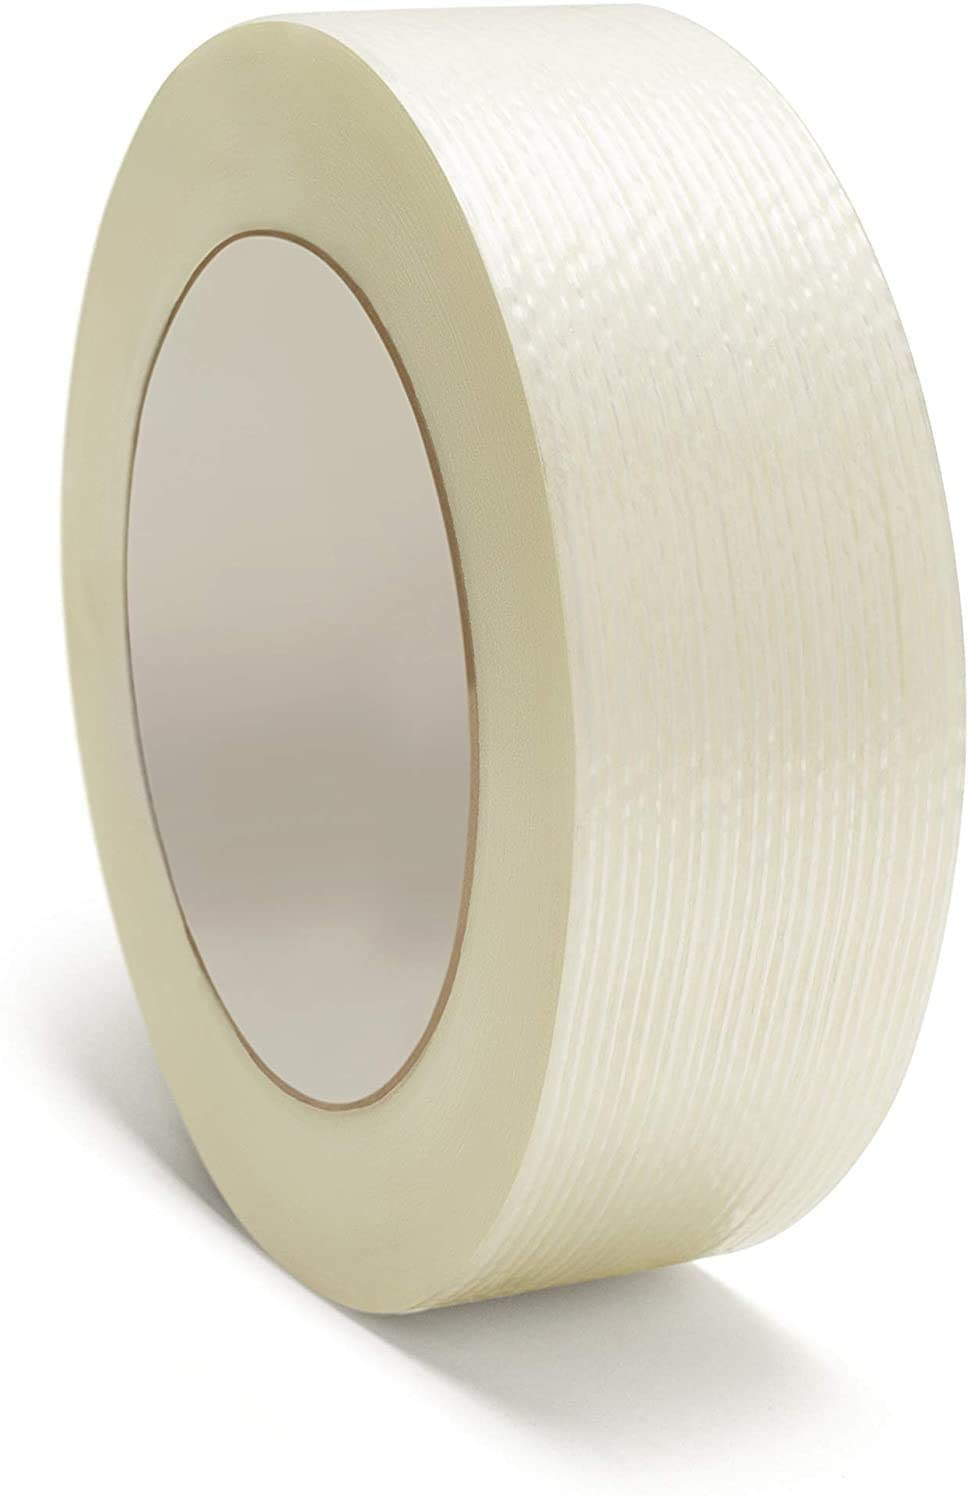 Made in The USA, Heavy Duty Strapping Tape, Filament Reinforced Tape Rolls, 4.0 Mil Thick, Clear, 3 Inch x 60 Yards, 16 Pack